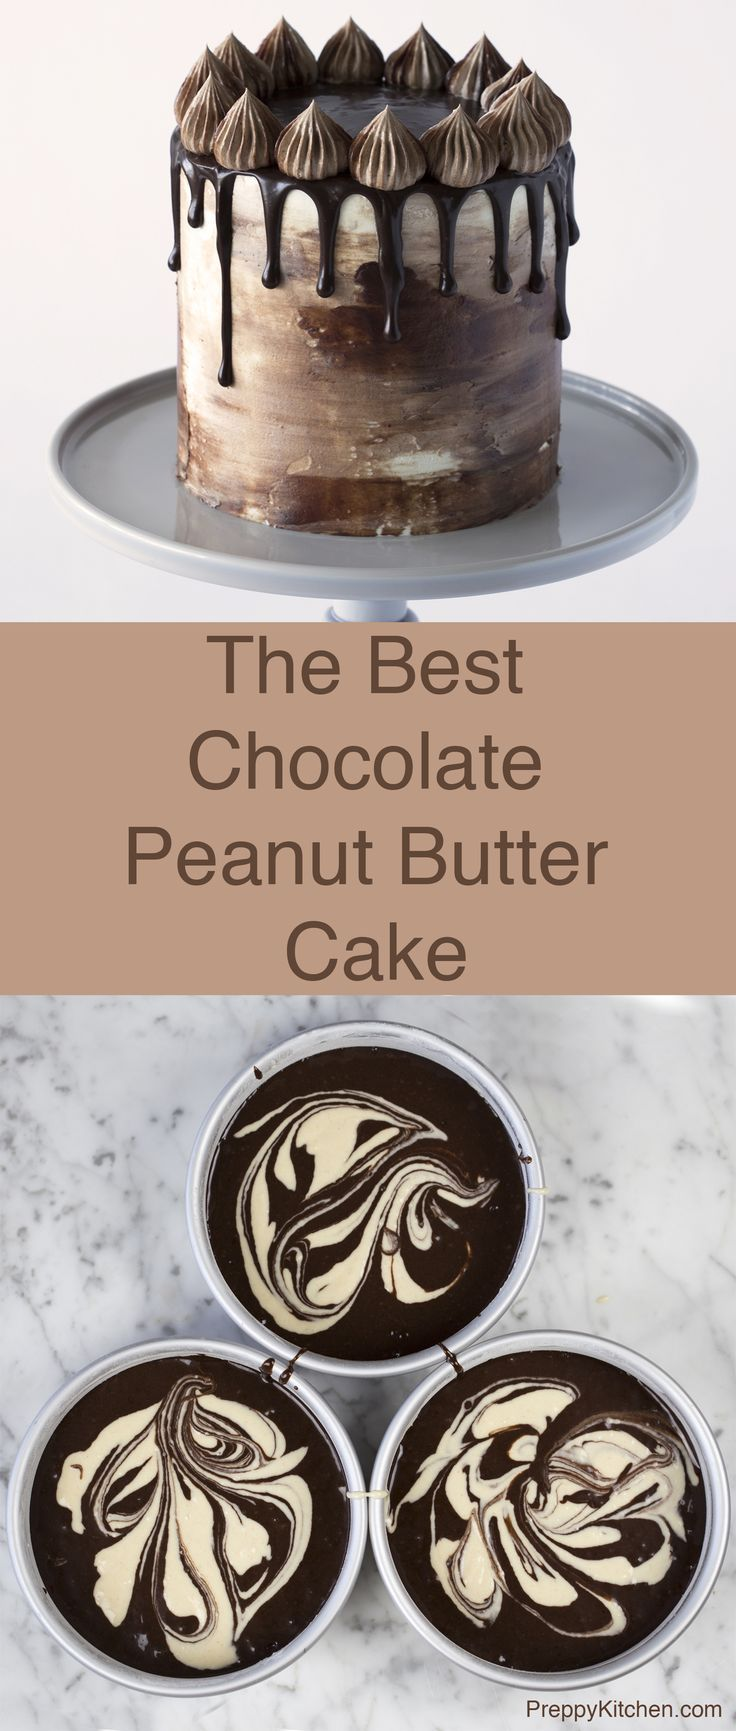 This chocolate cake is marbleized with a peanut butter batter, covered in…